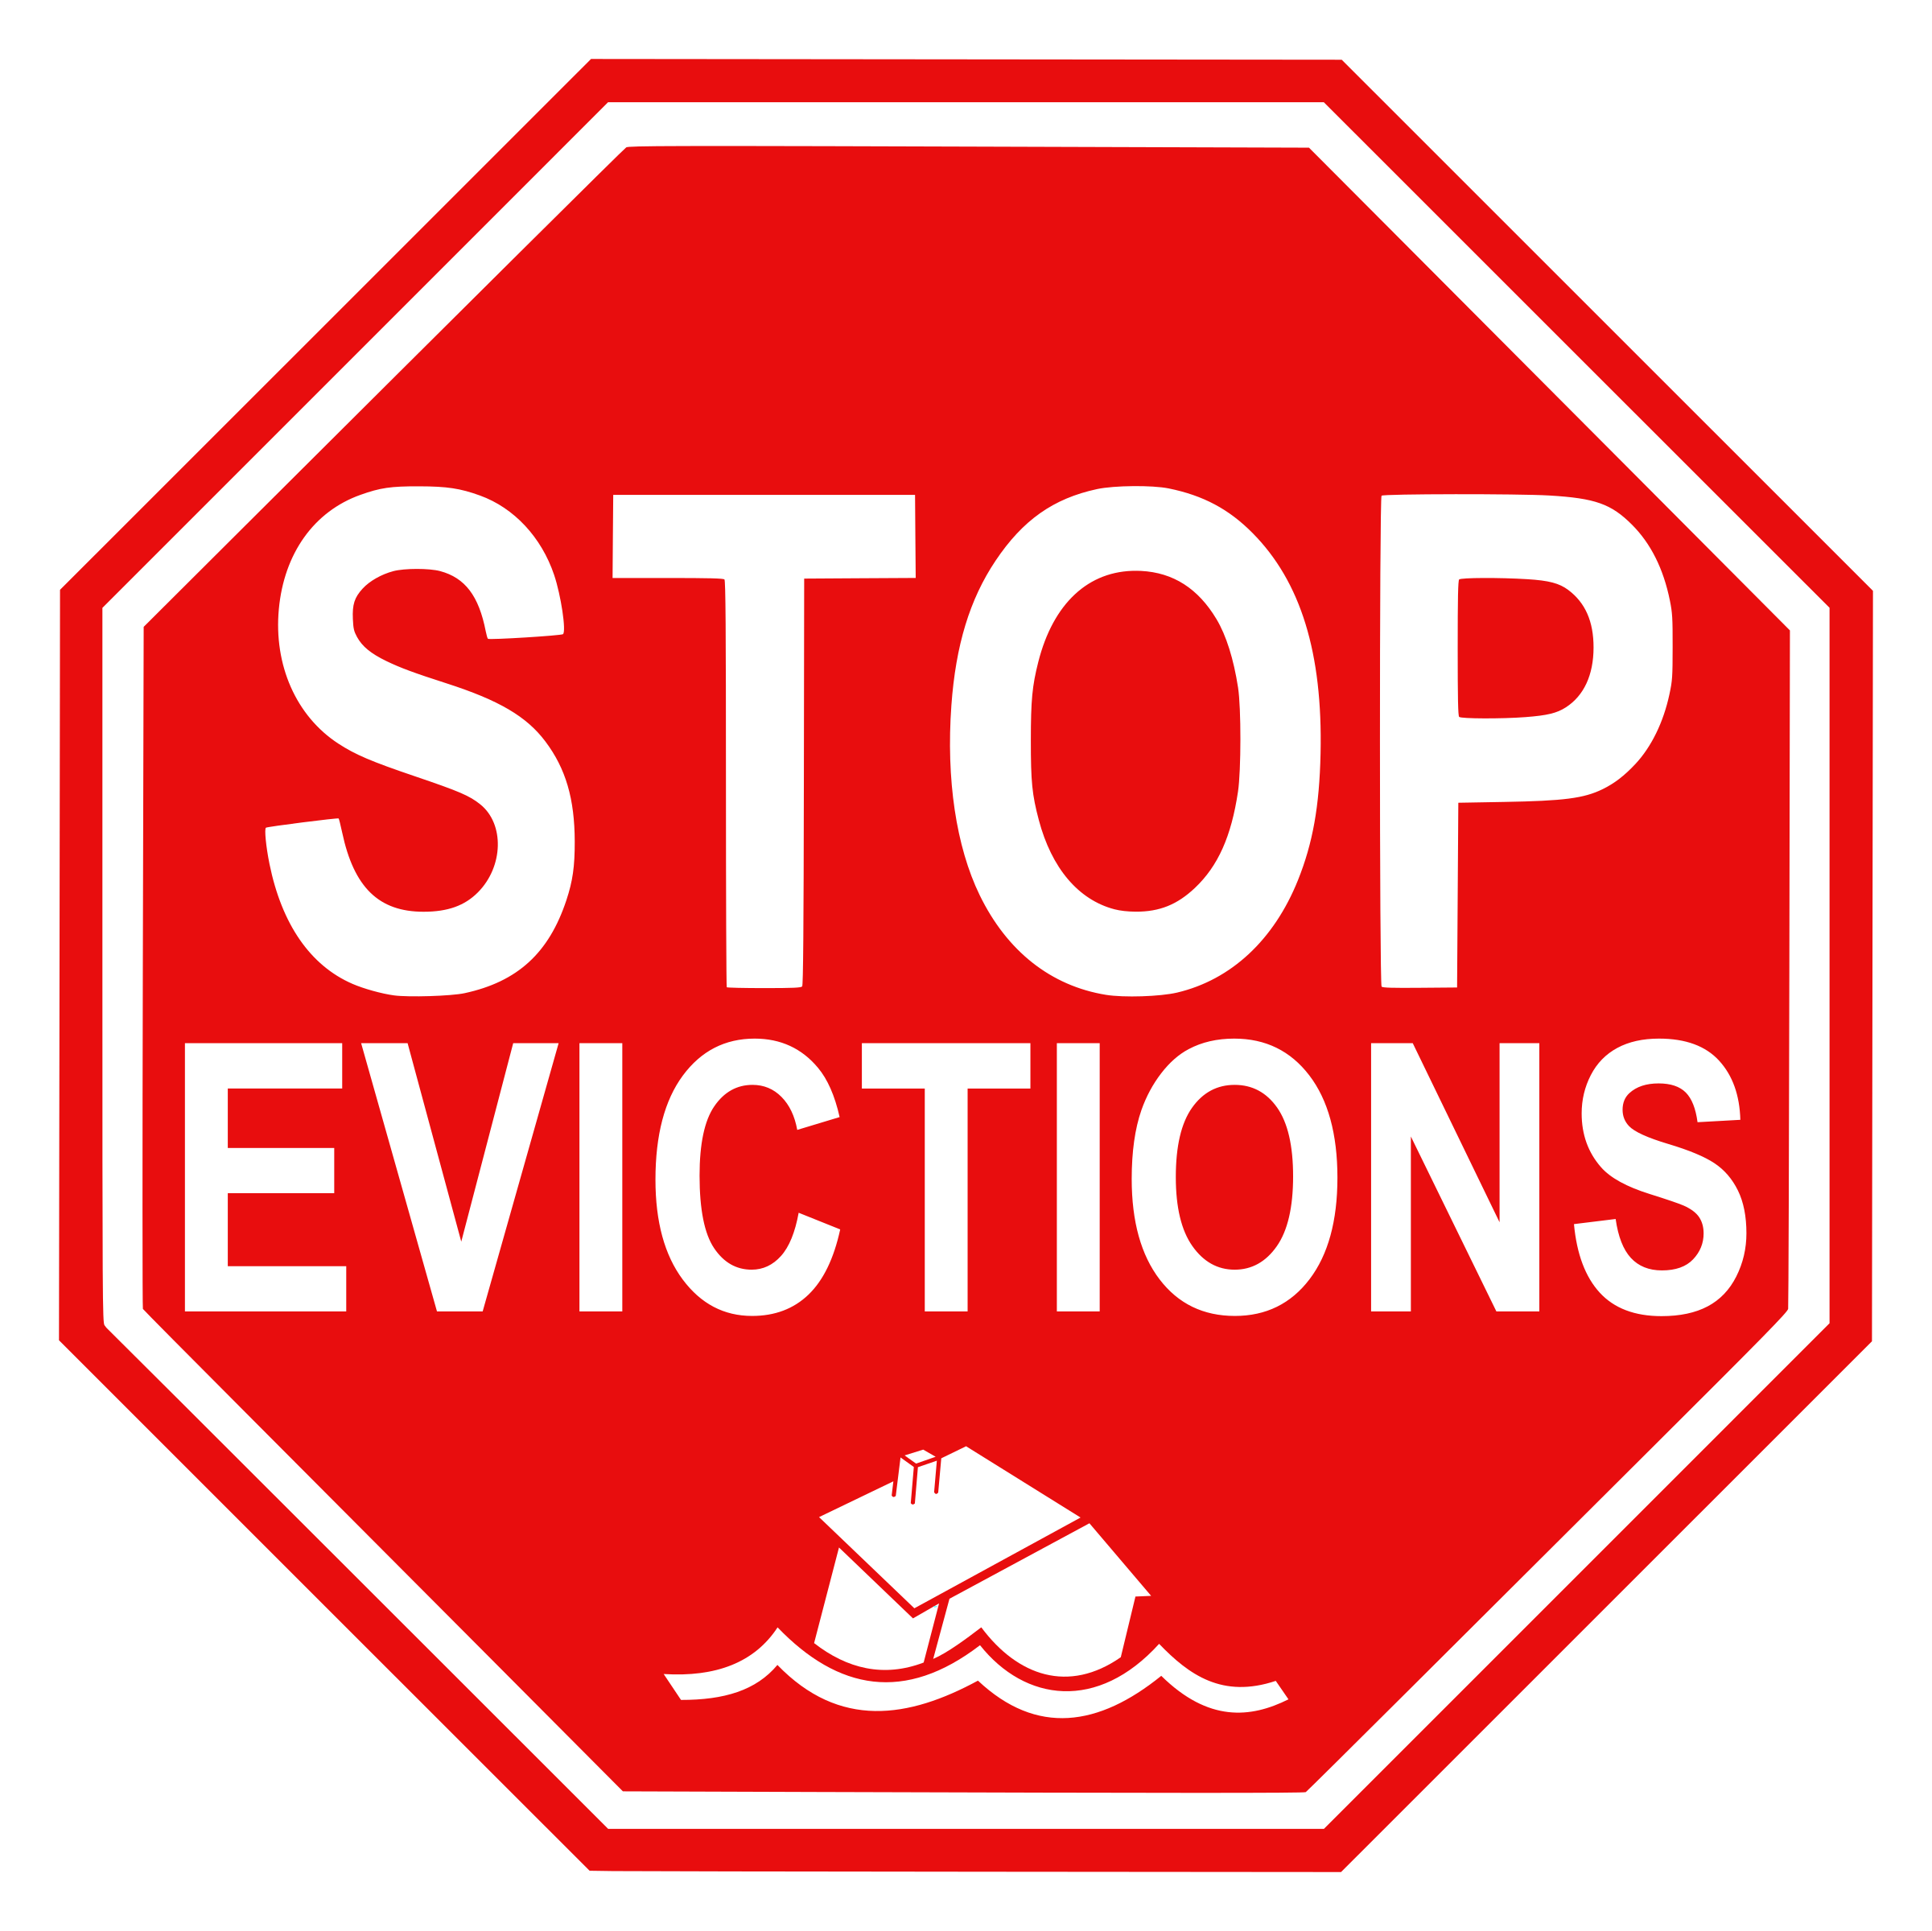 Stop .png. Evictions icons png free